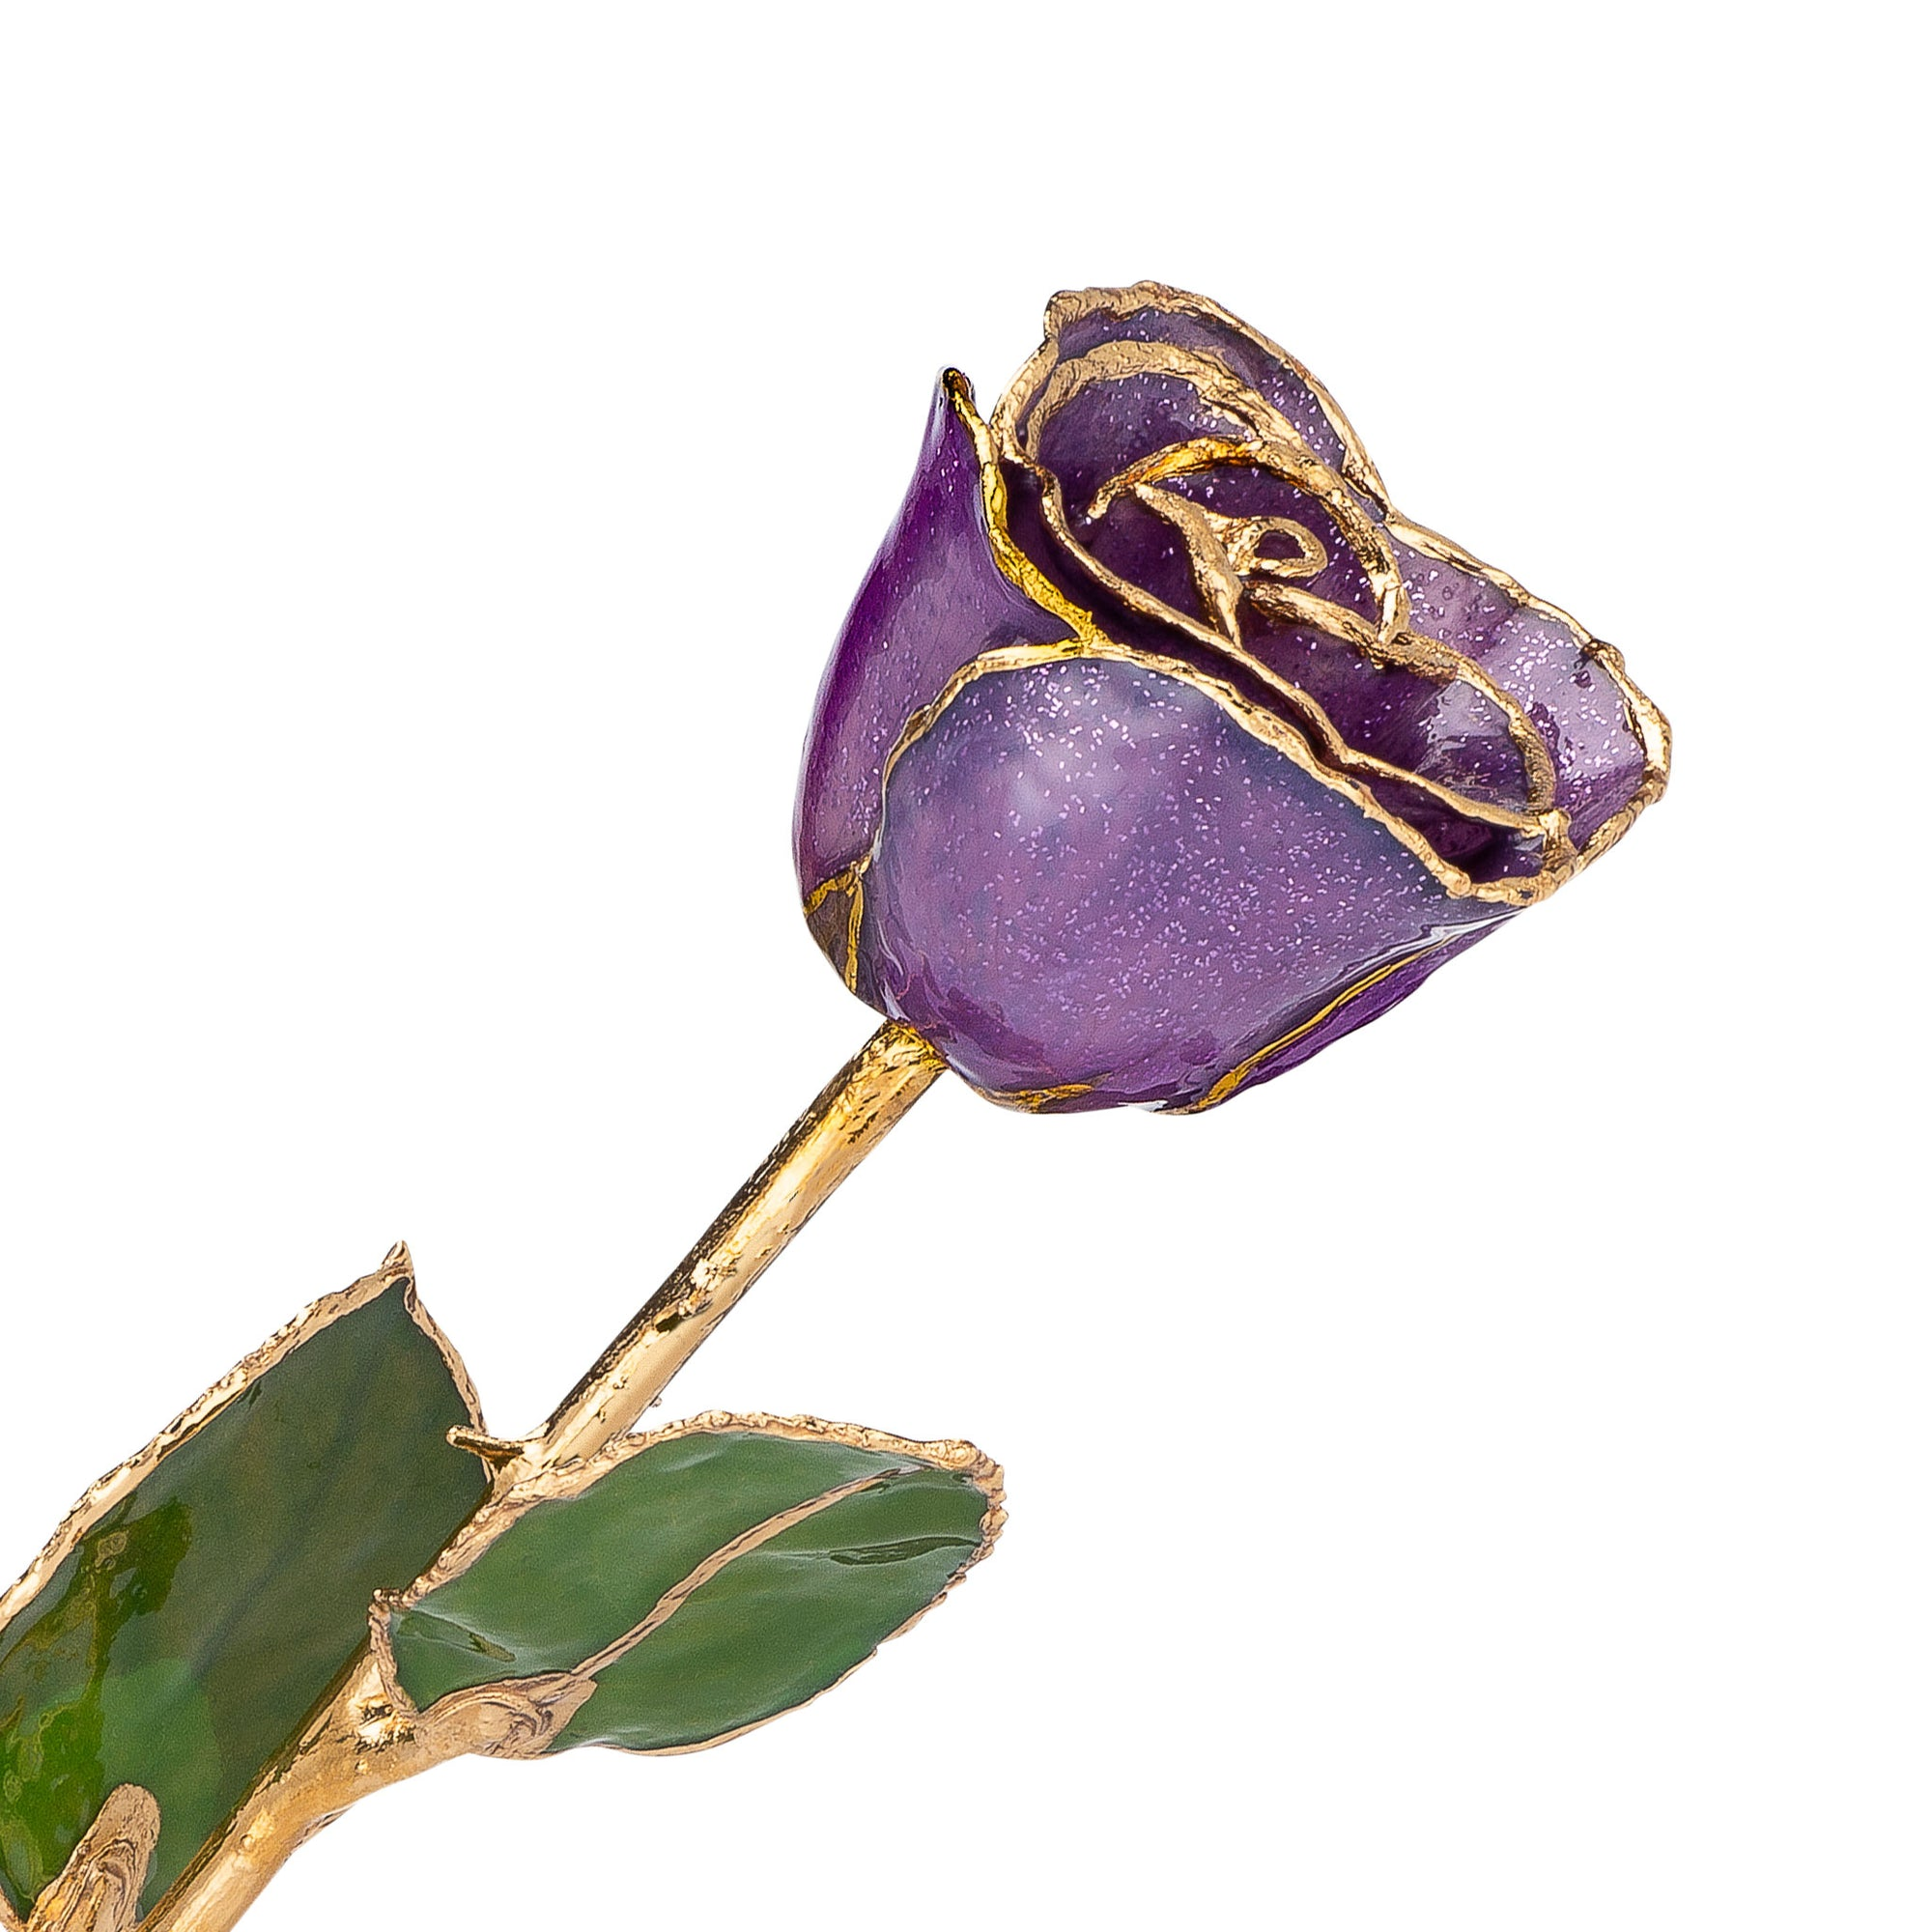 24K Gold Trimmed Forever Rose with Amethyst (purple color) with sparkles suspended in the finish. View of Stem, Leaves, and Rose Petals and Showing Detail of Gold